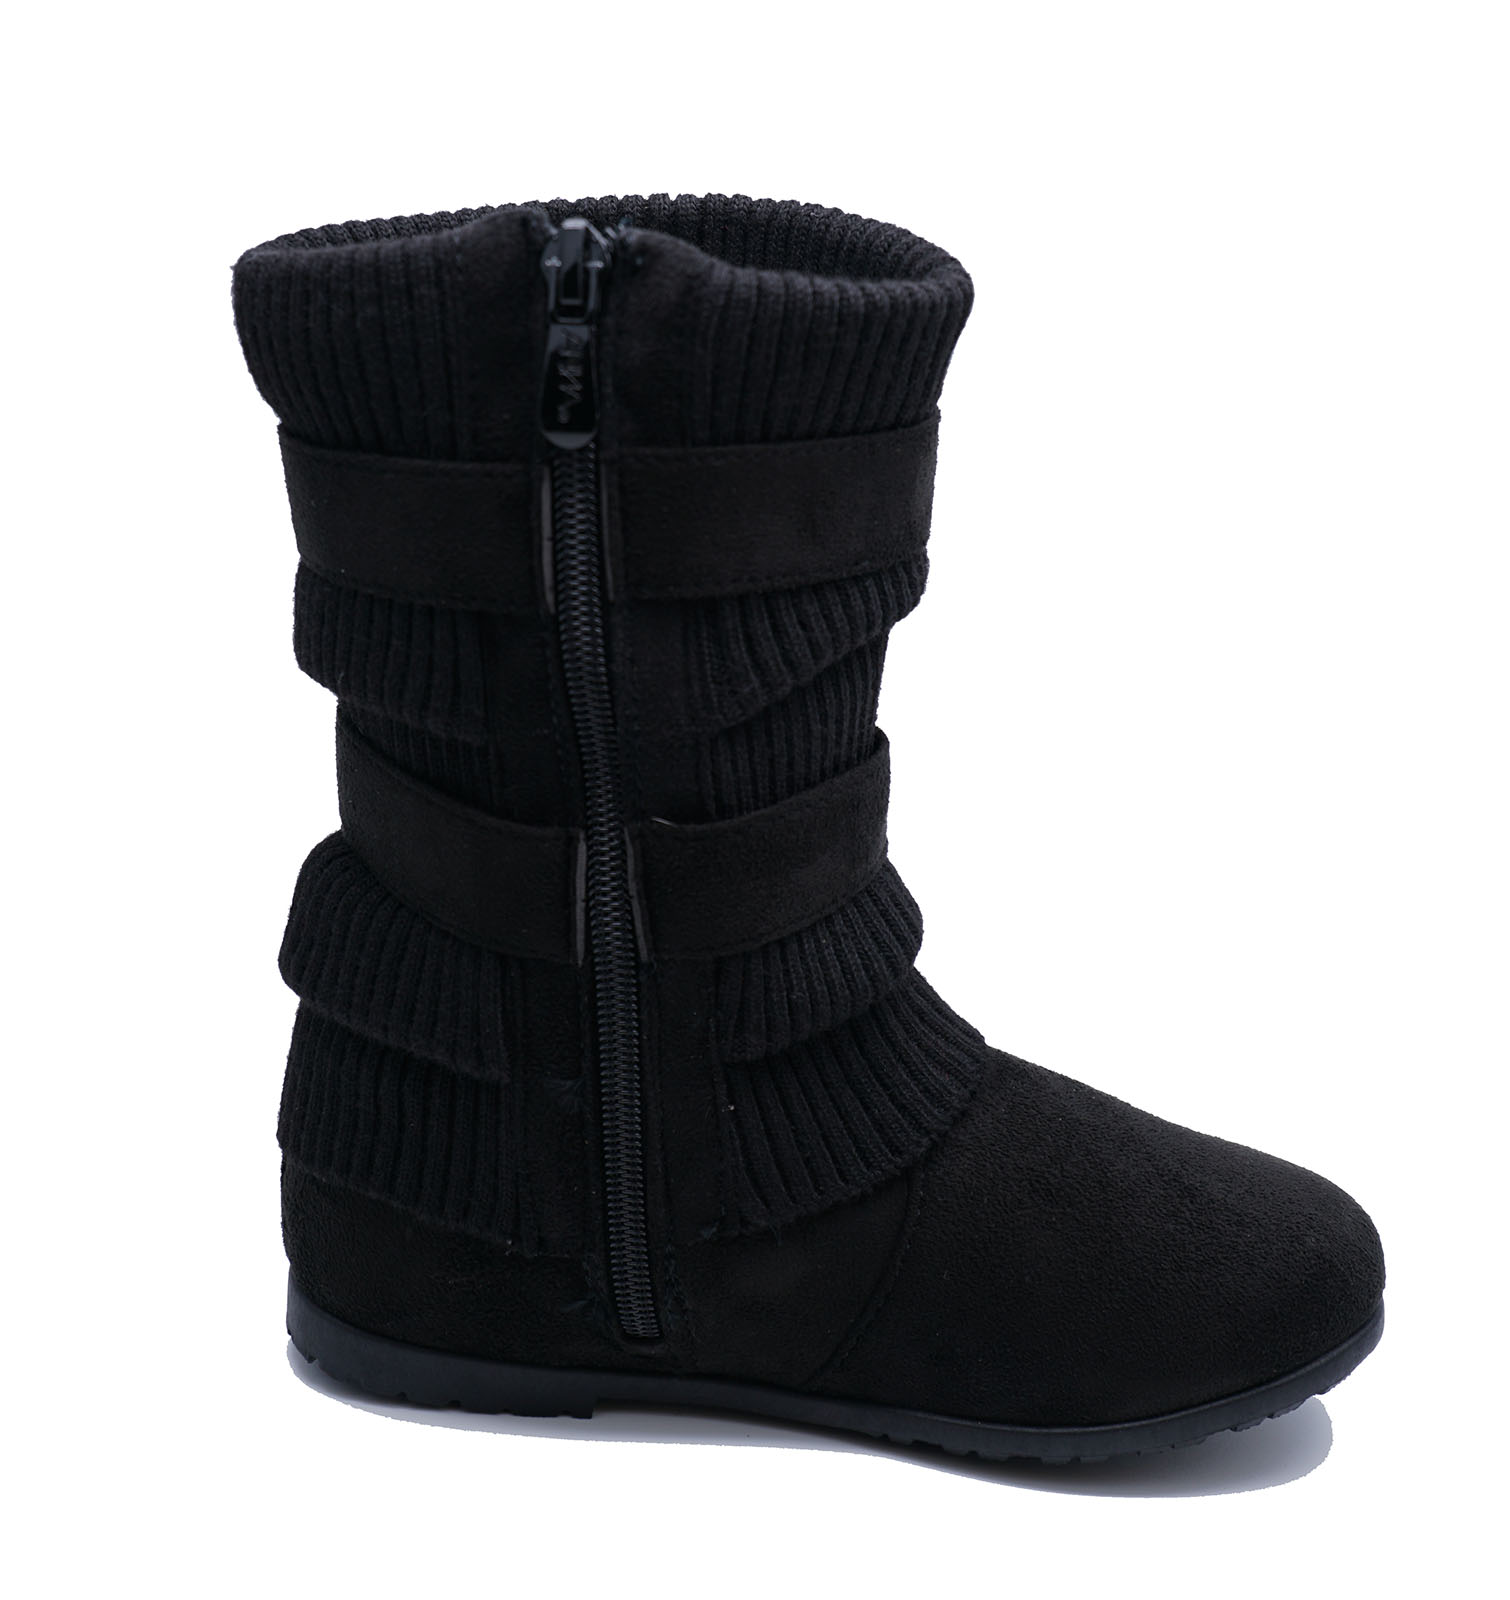 FLAT RUCHED ZIP-UP WARM WINTER BOOTS